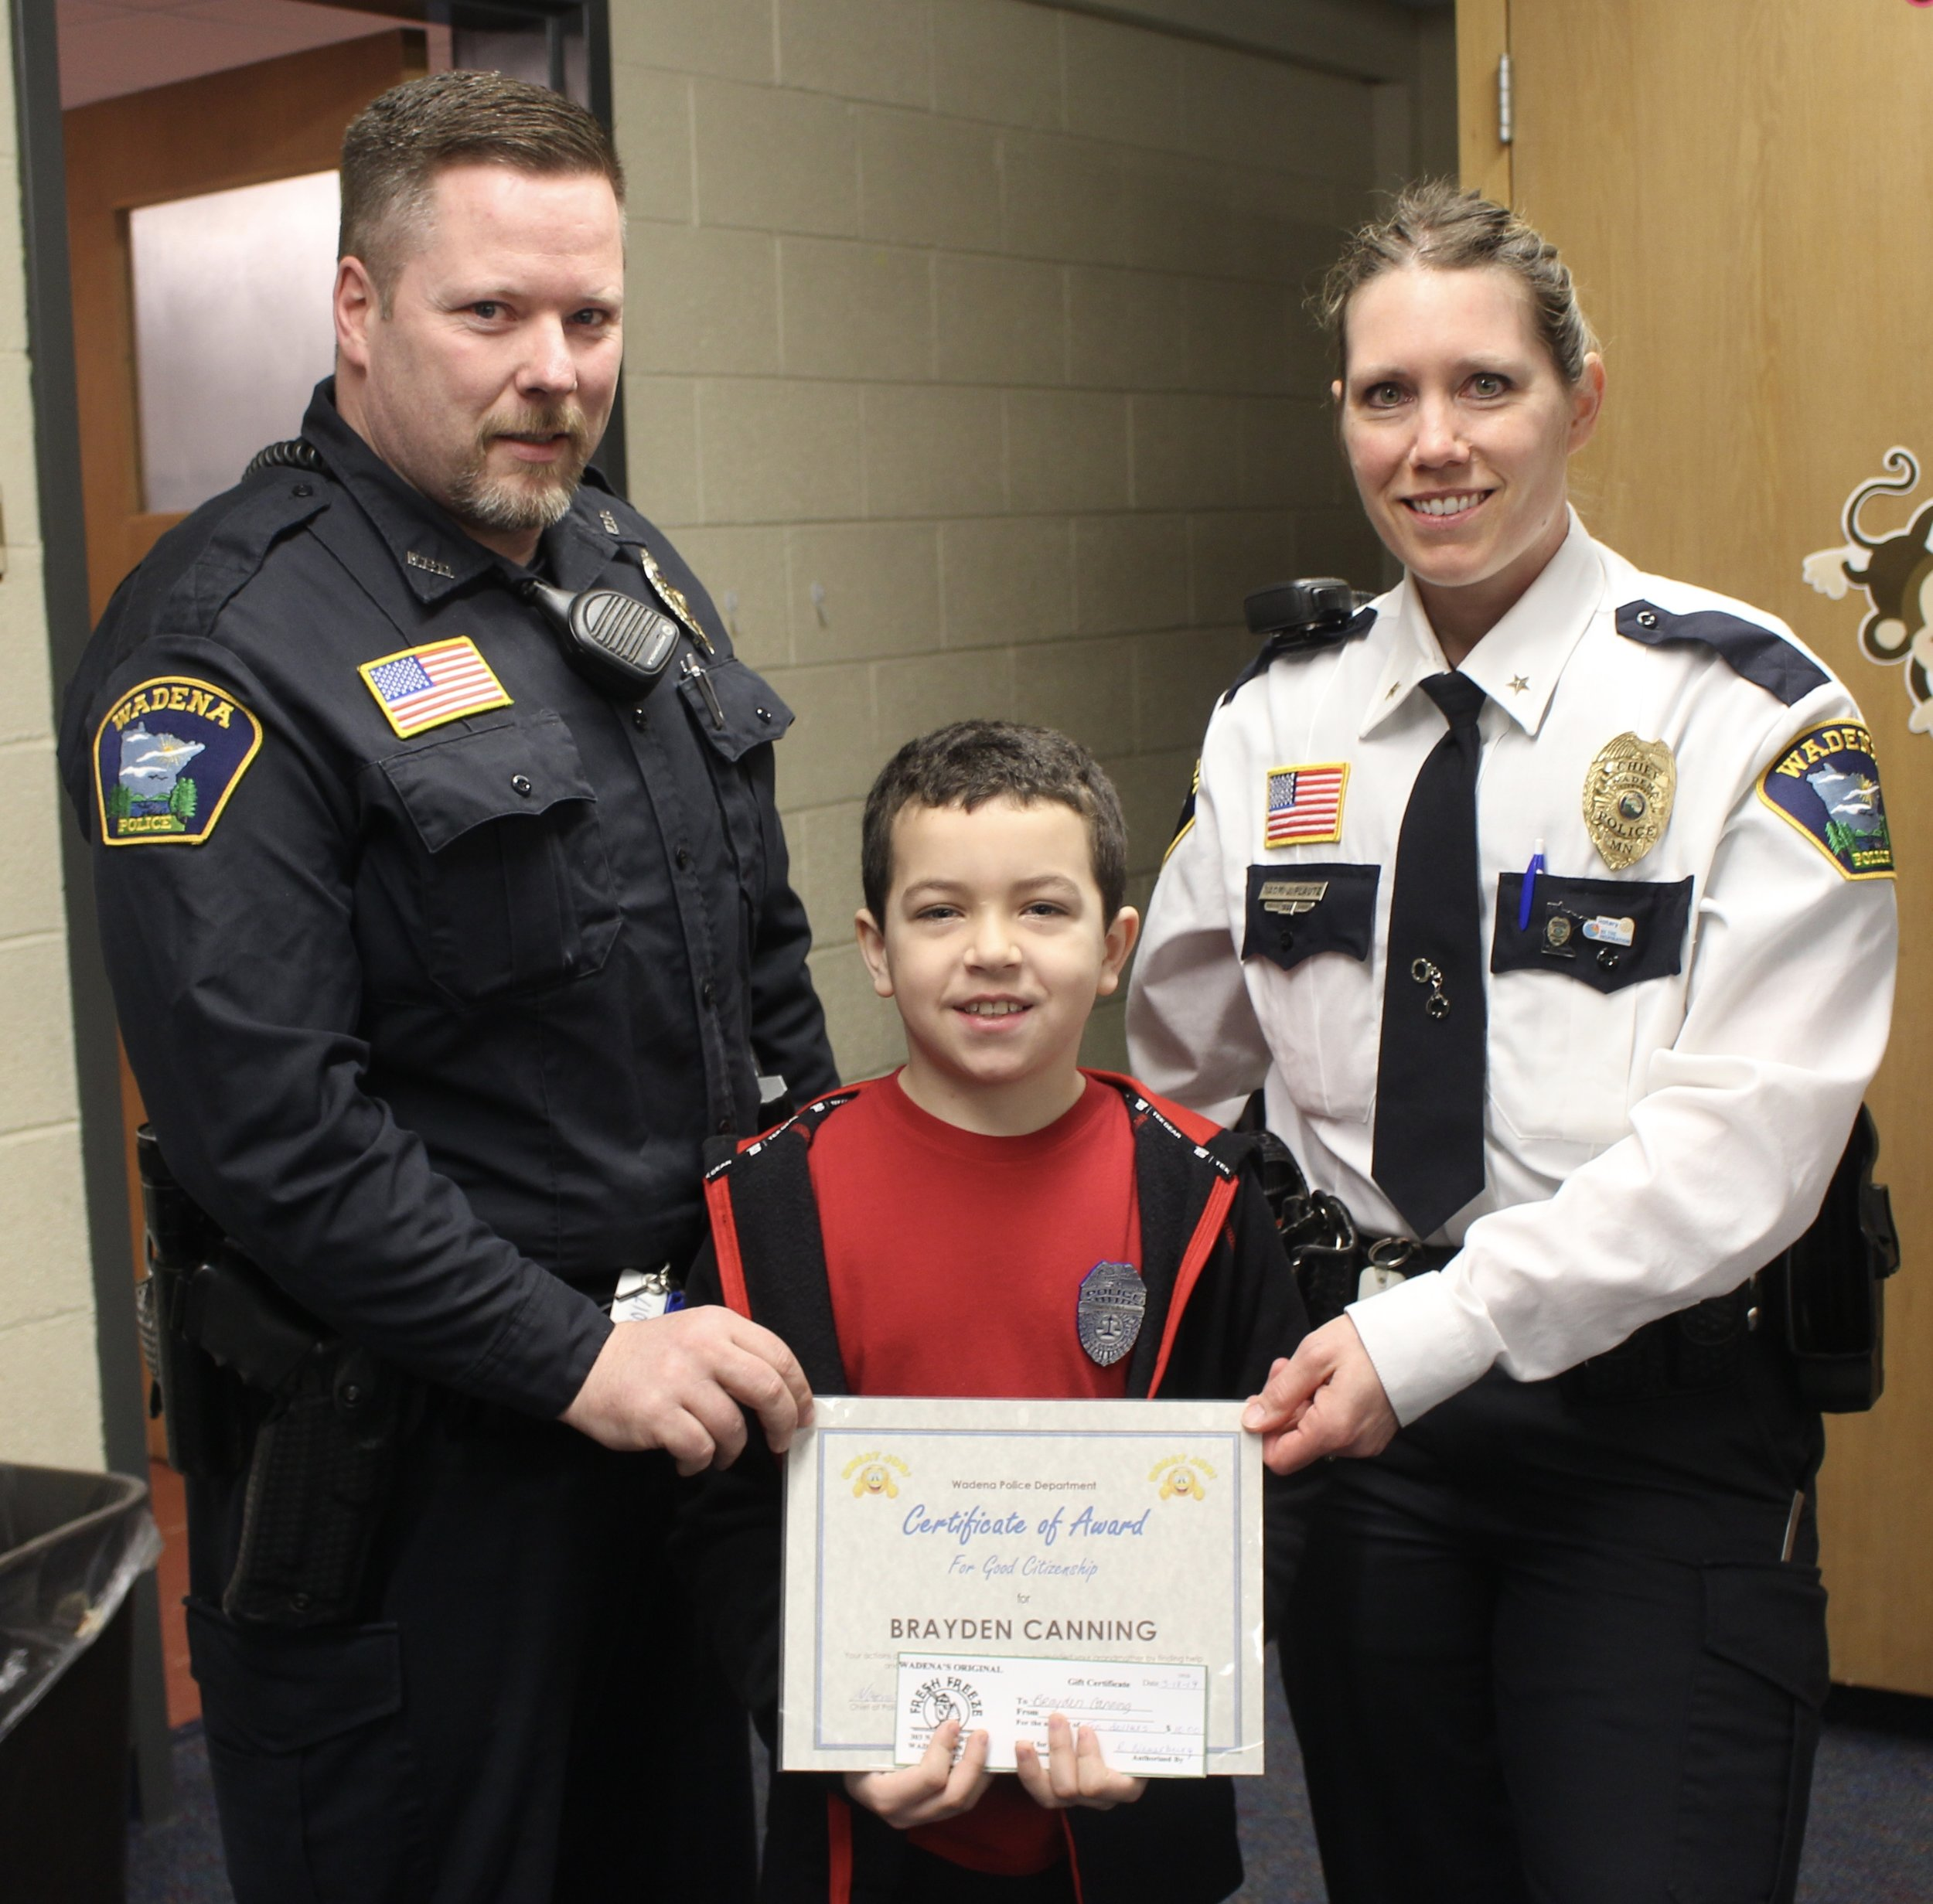 Wadena-Deer Creek second-grader Brayden Canning displays his Citizenship Award presented to him by Wadena Police Chief Naomi Plautz, right, and School Resource Officer Nick Grabe for his quick thinking and bravery. Photo by Dana Cantleberry, WDC Schools.